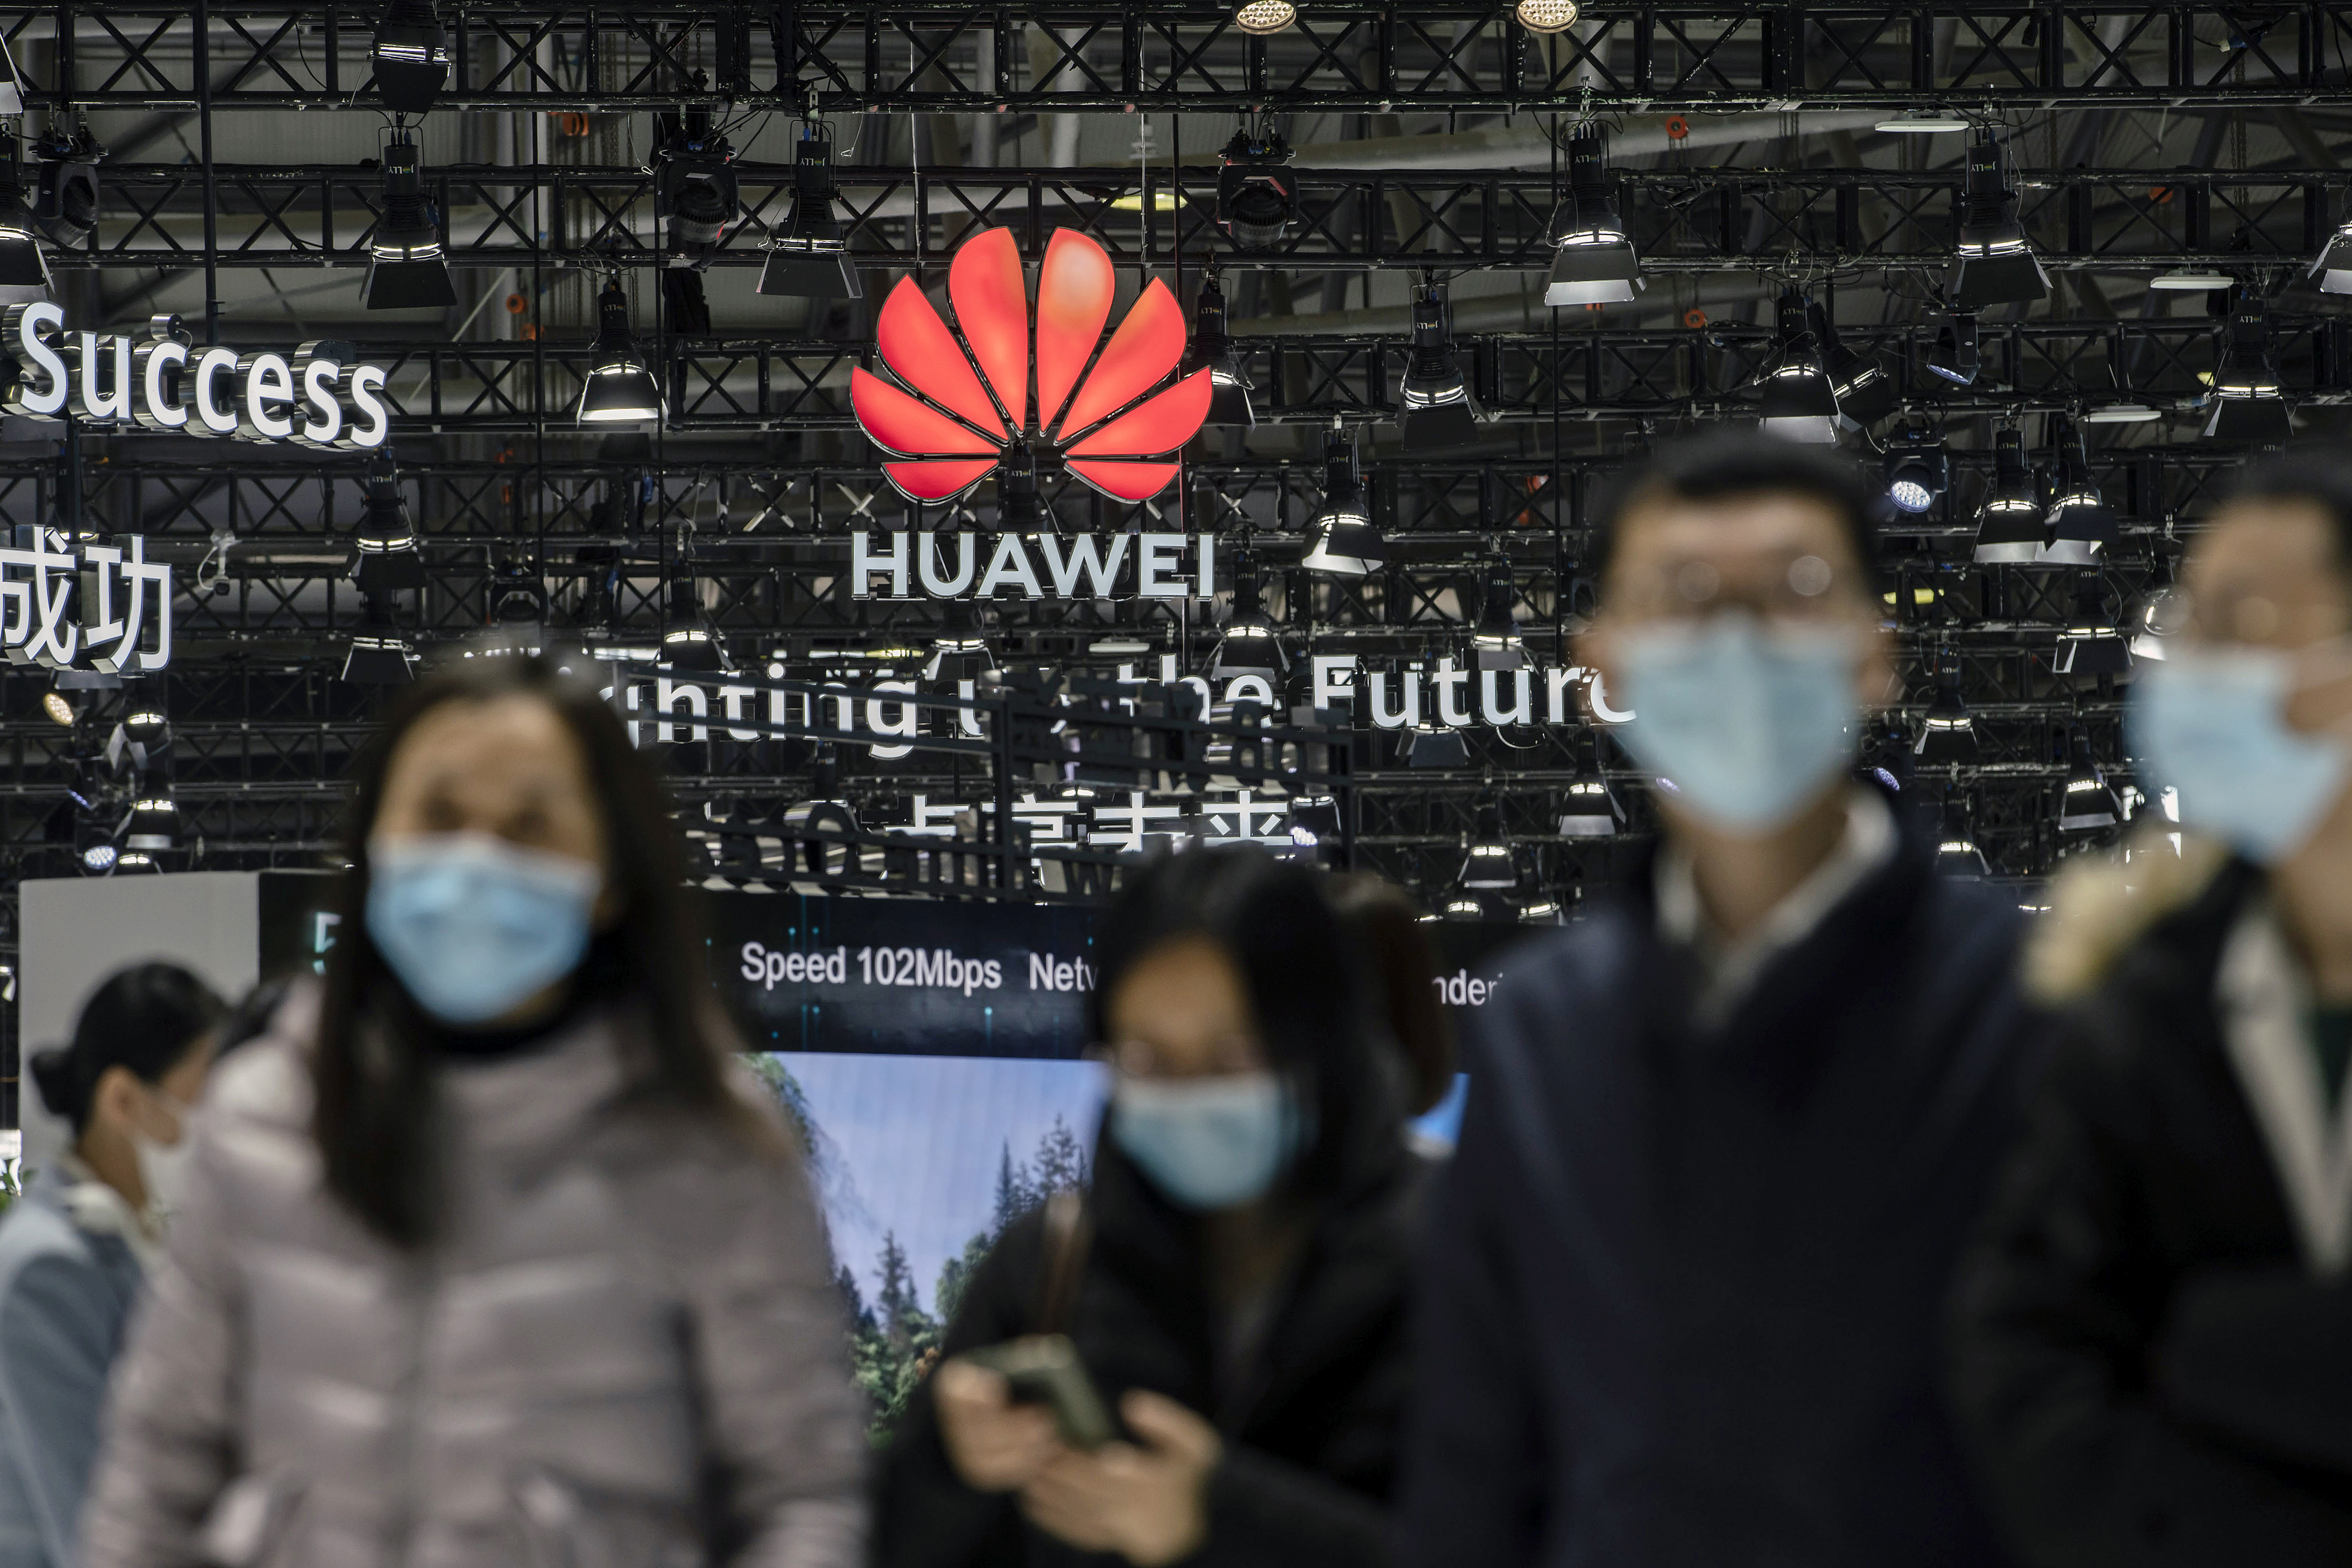 Attendees walk past the Huawei logo at the MWC Shanghai exhibition in Shanghai on Feb. 23. Photo: VCG